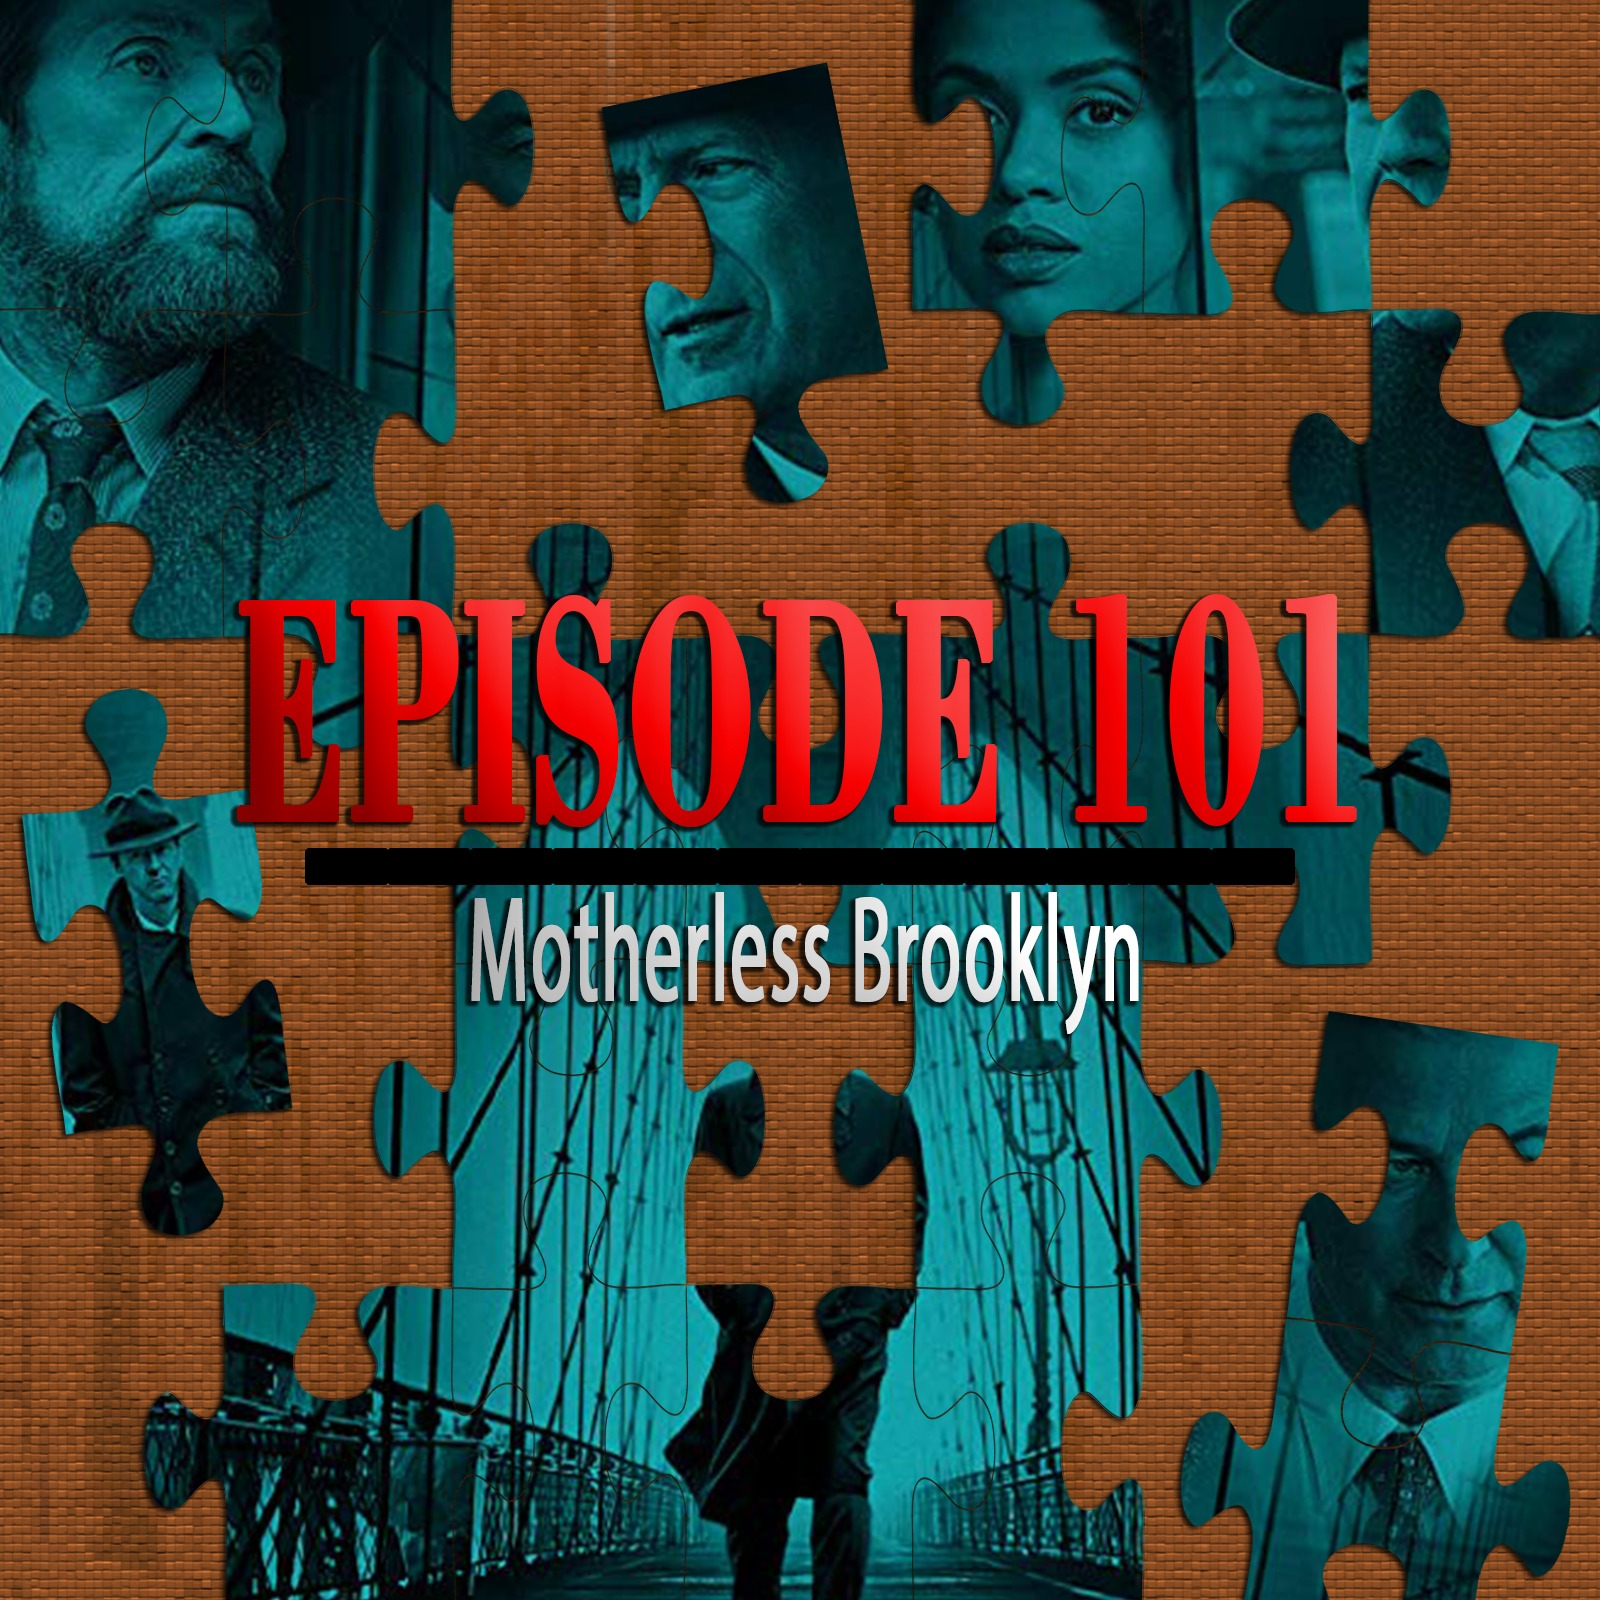 Motherless Brooklyn (Featuring Joe Black)